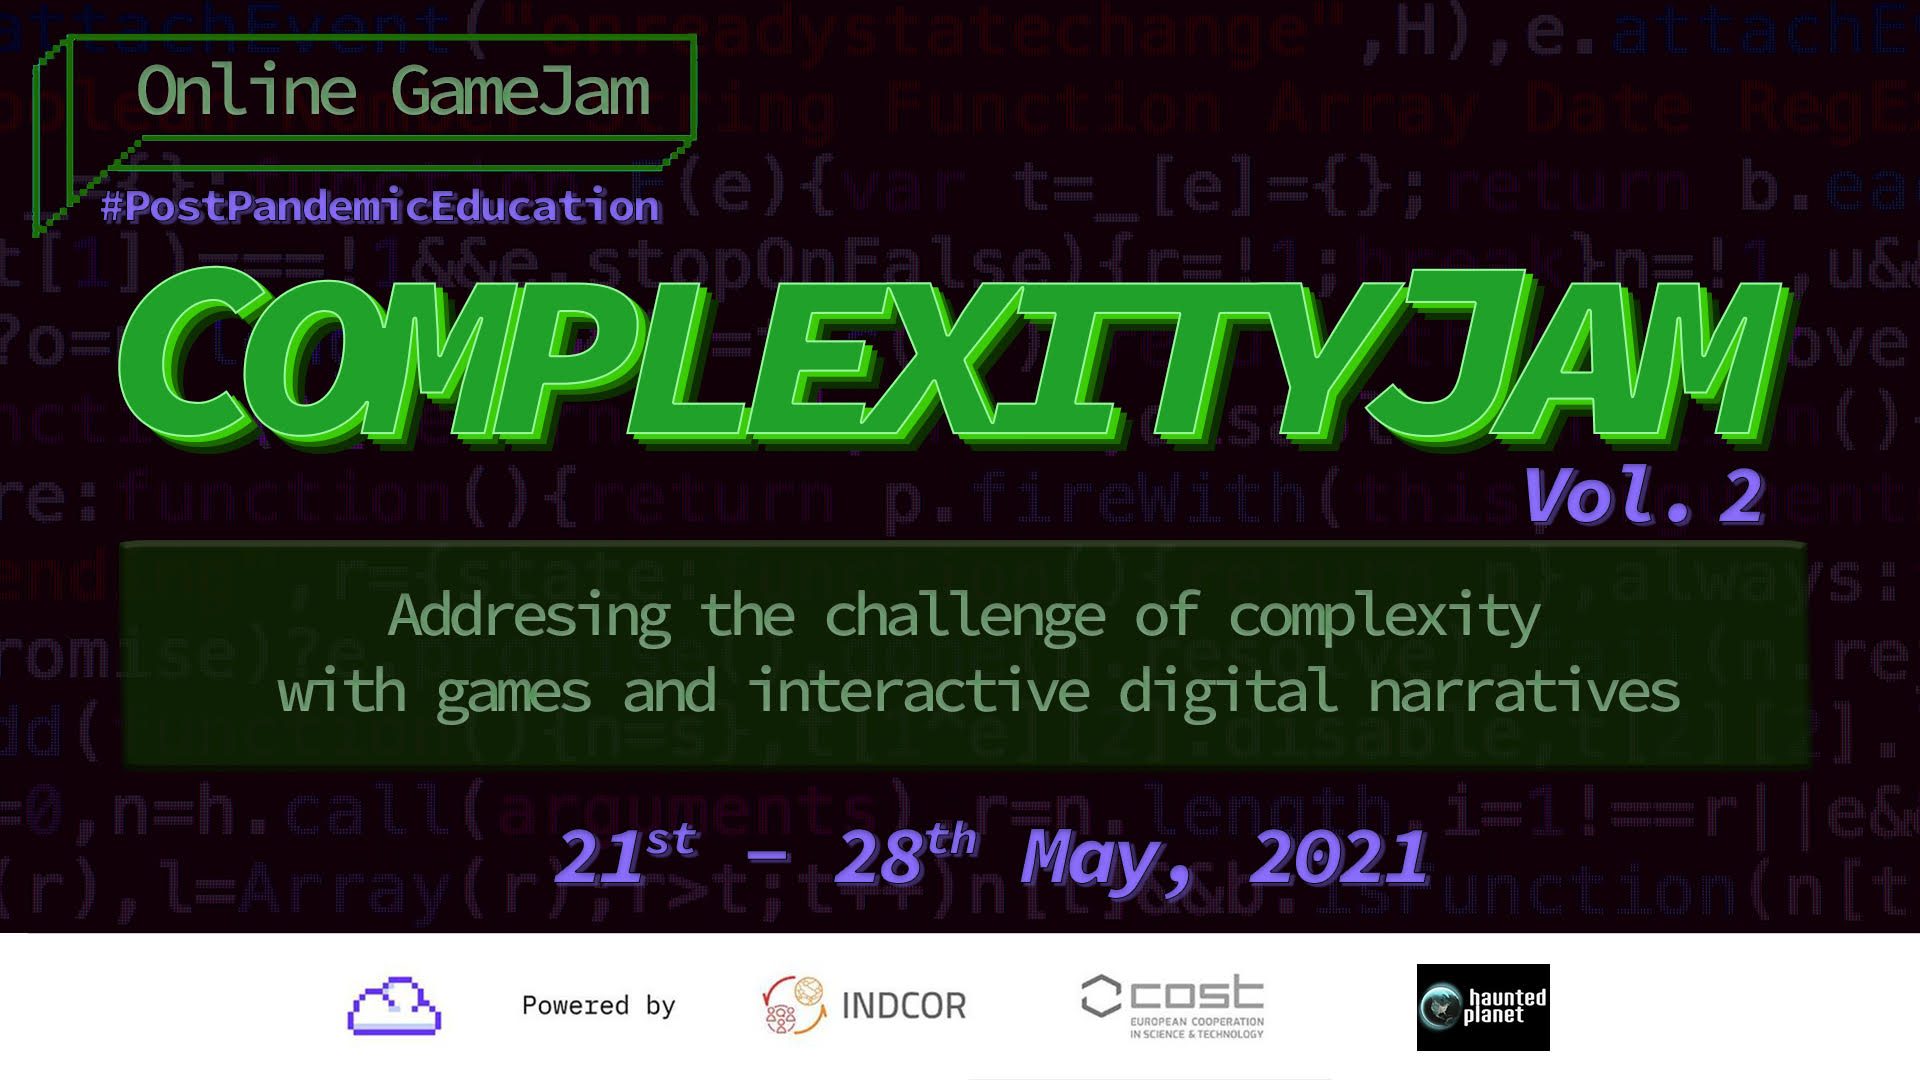 ComplexityJam (II): Call for participants and partners (May 21-28)